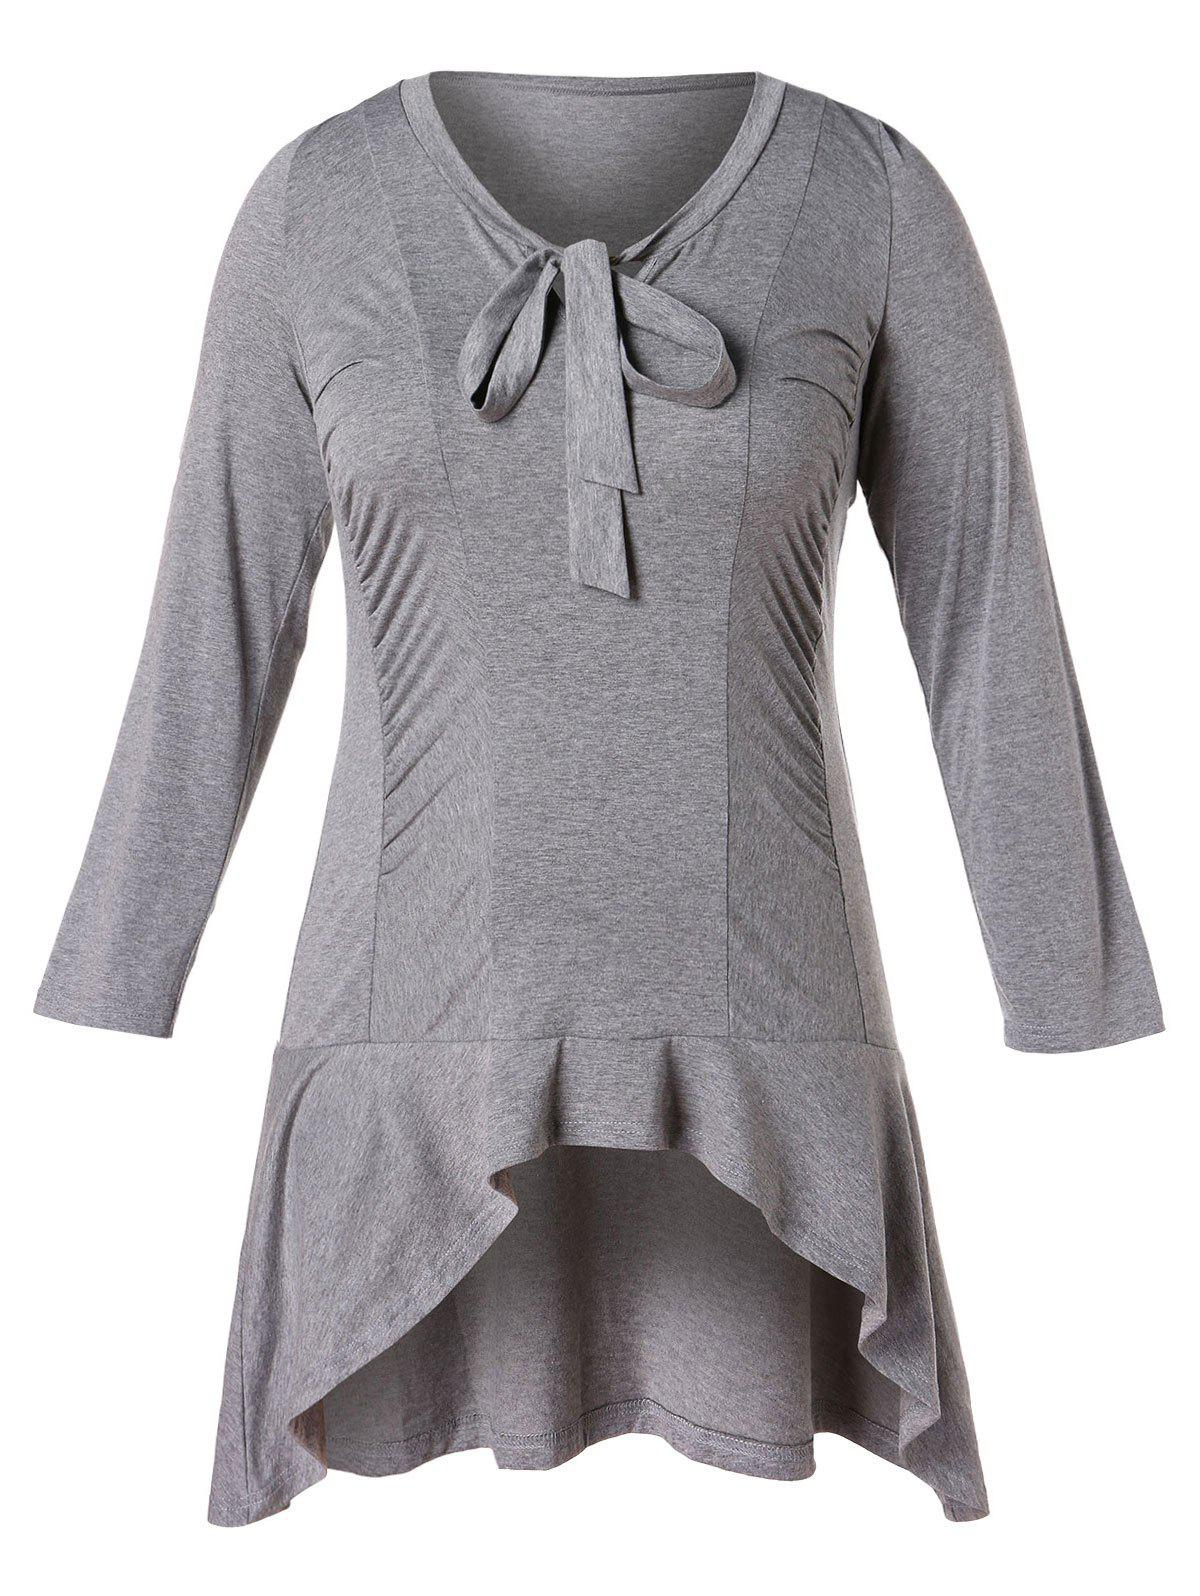 Trendy Plus Size Bow Tie Flounced High Low Tunic T-shirt